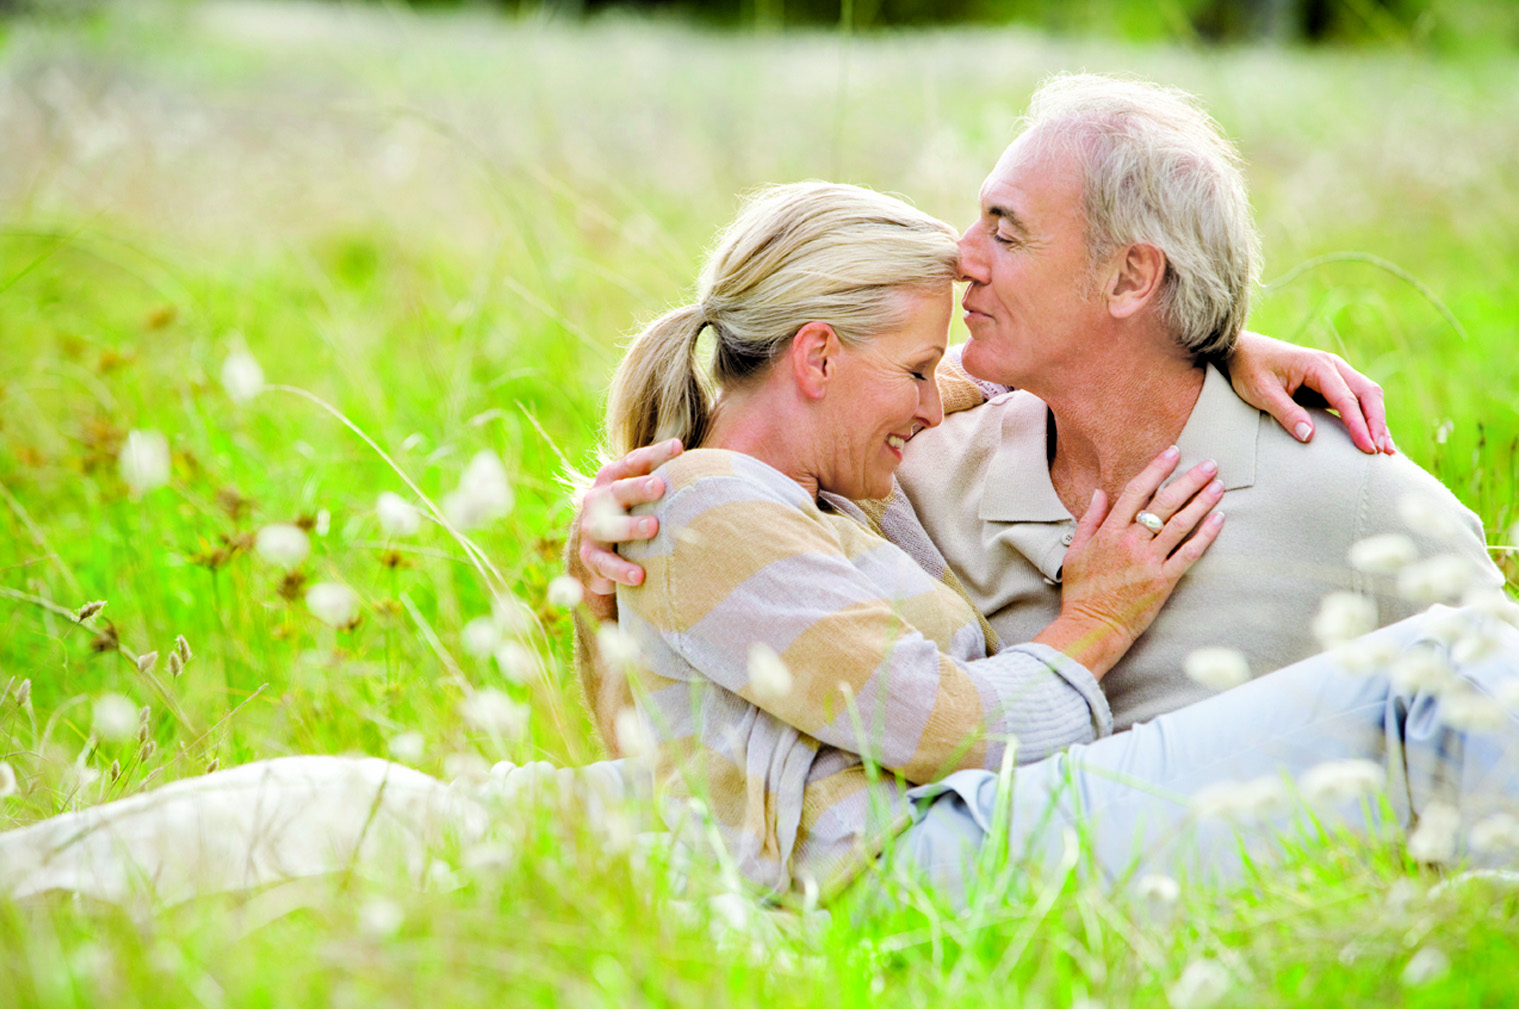 excello senior personals Dating for seniors is the #1 dating site for senior single men/women looking to find their soulmate 100% free senior dating site signup today.